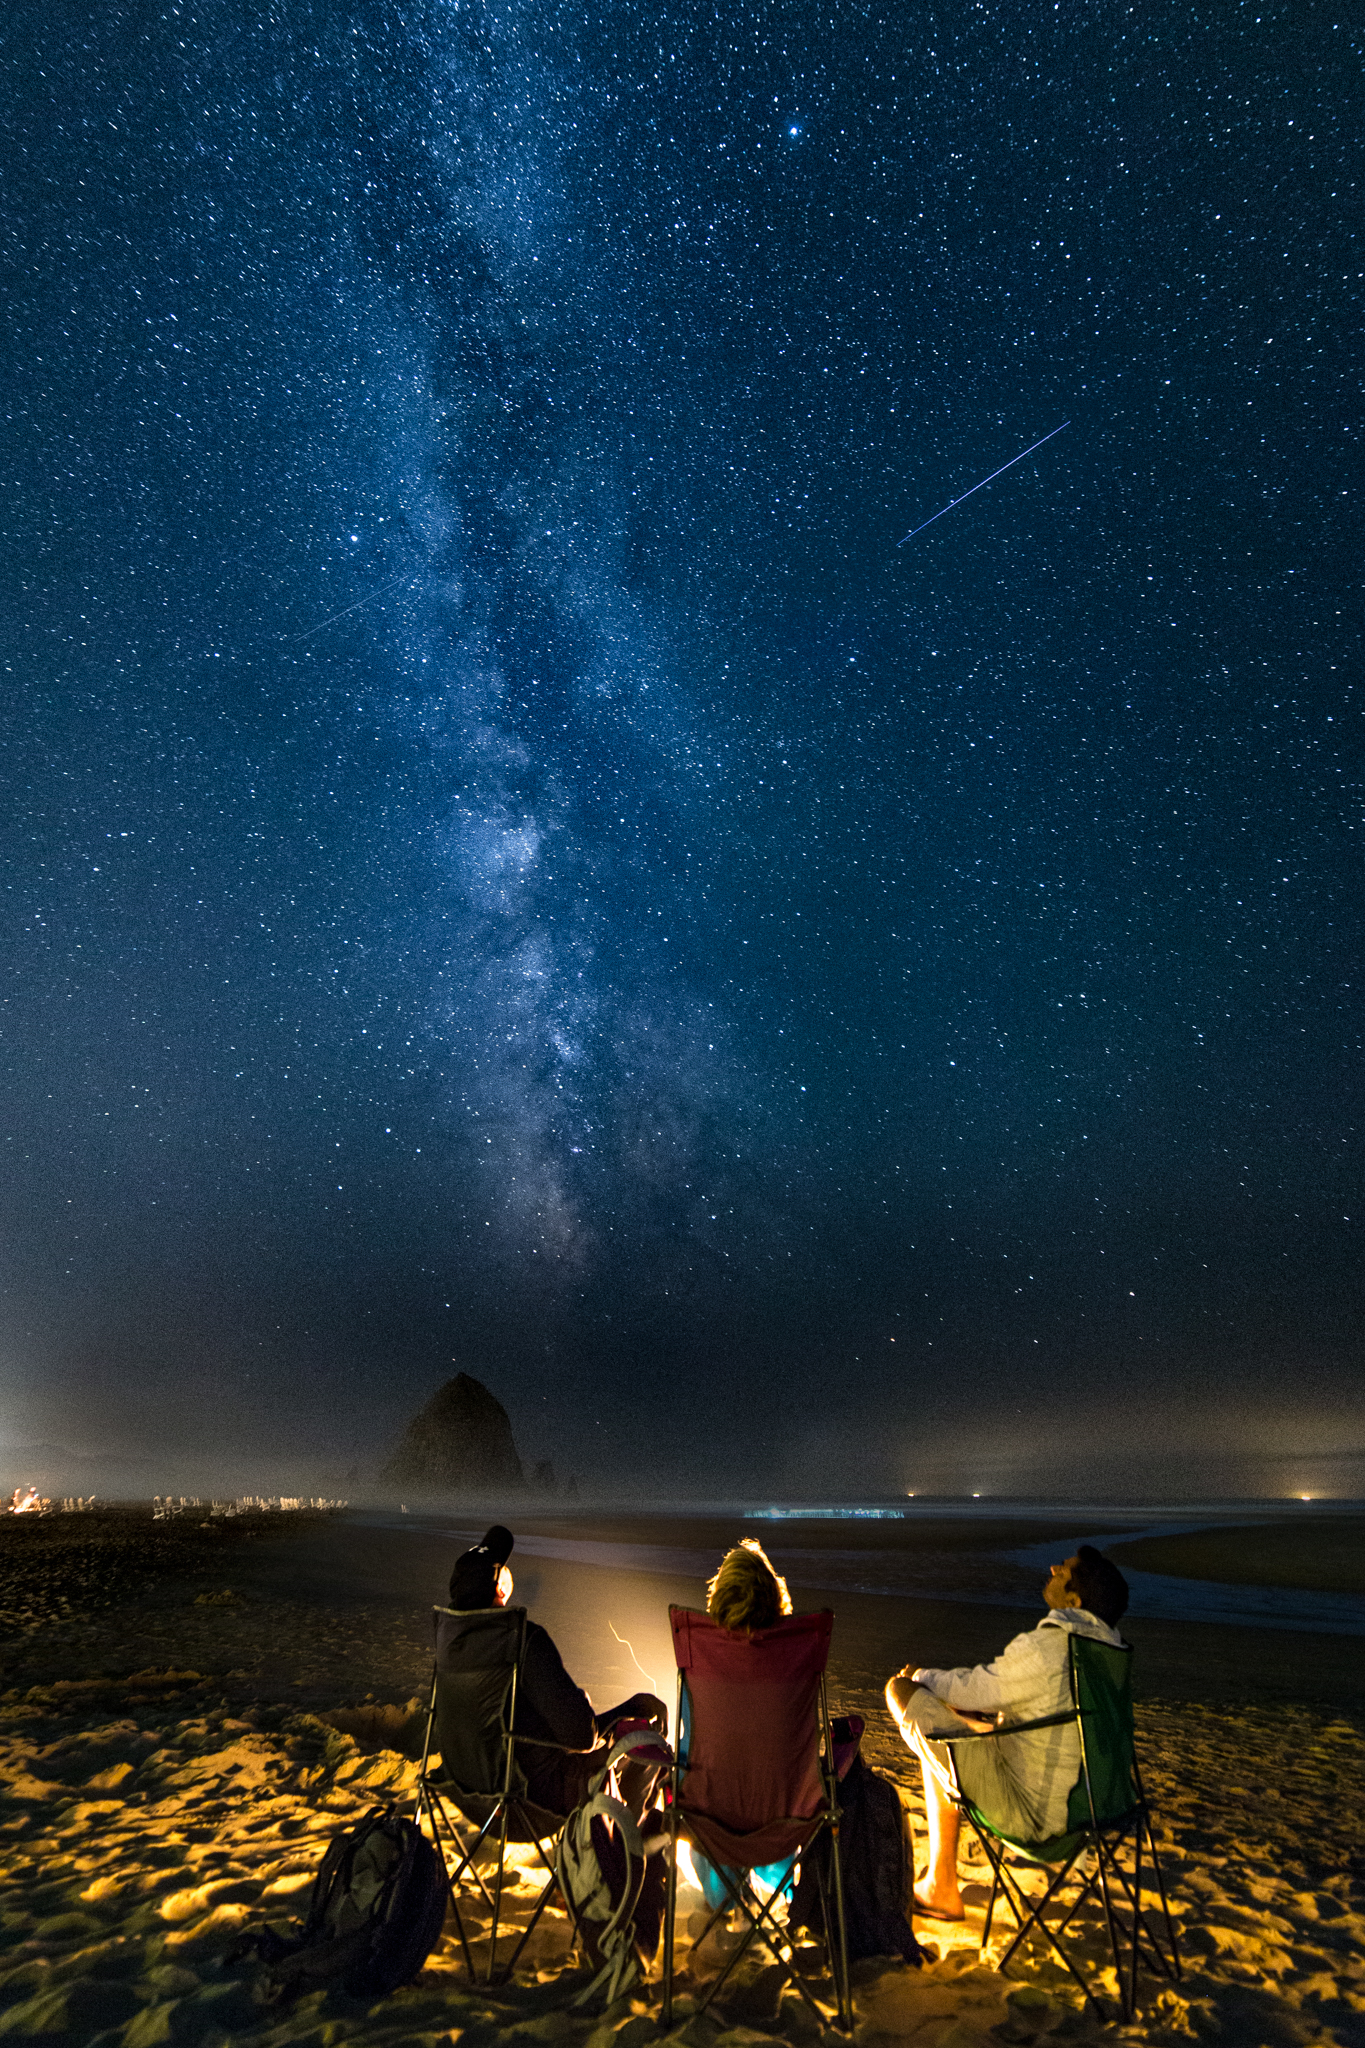 Under the Starry Sky: Trio Watches Meteor Shower in Stunning Photo